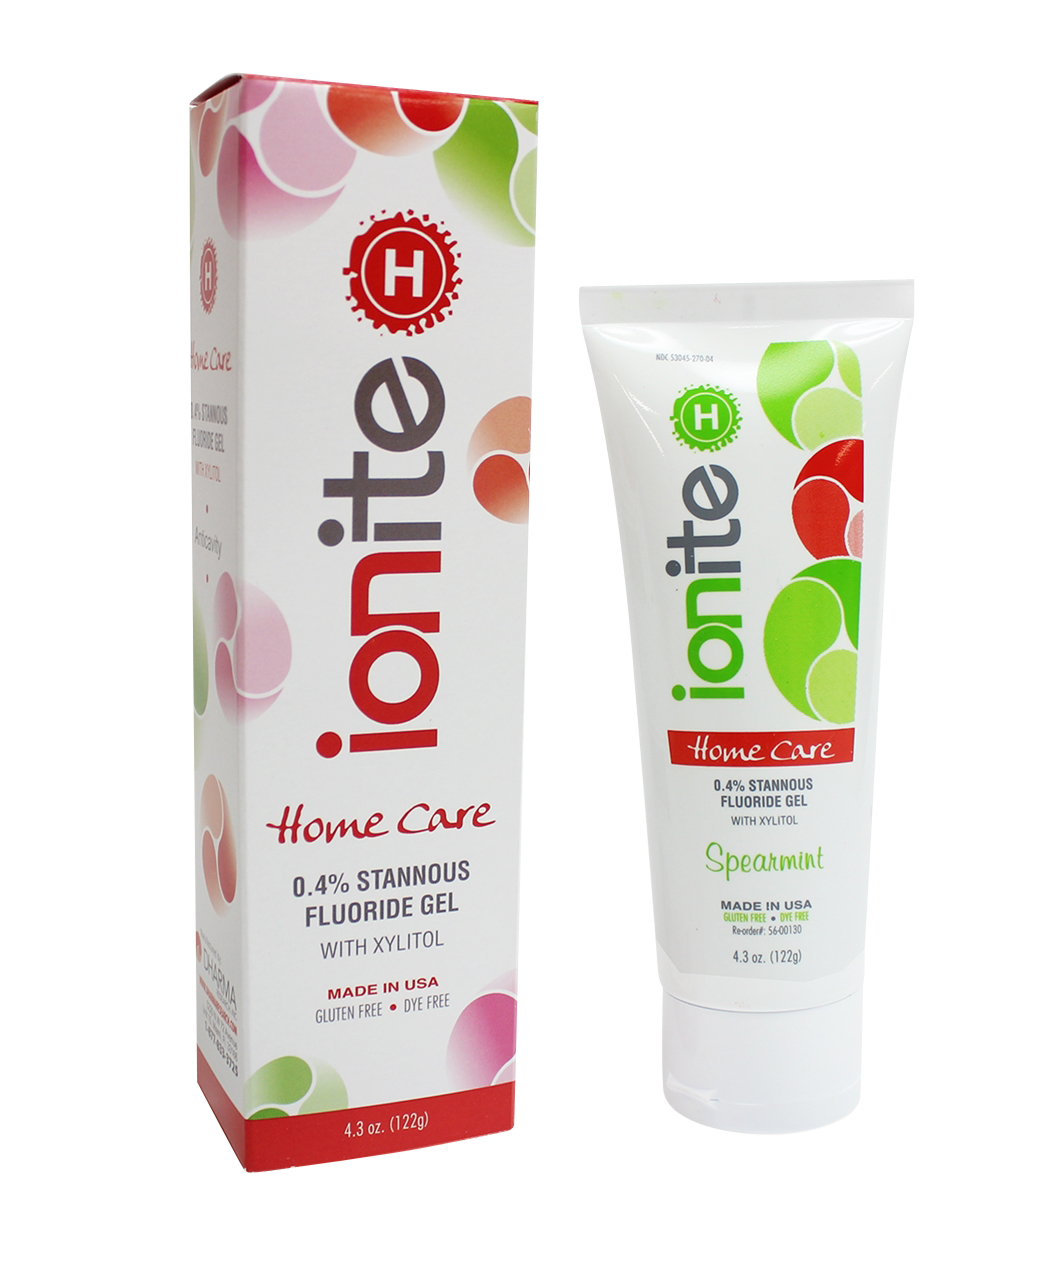 Picture of Ionite-H .40% Stannous Fluoride Gel 4.3oz Spearmint - Dharma